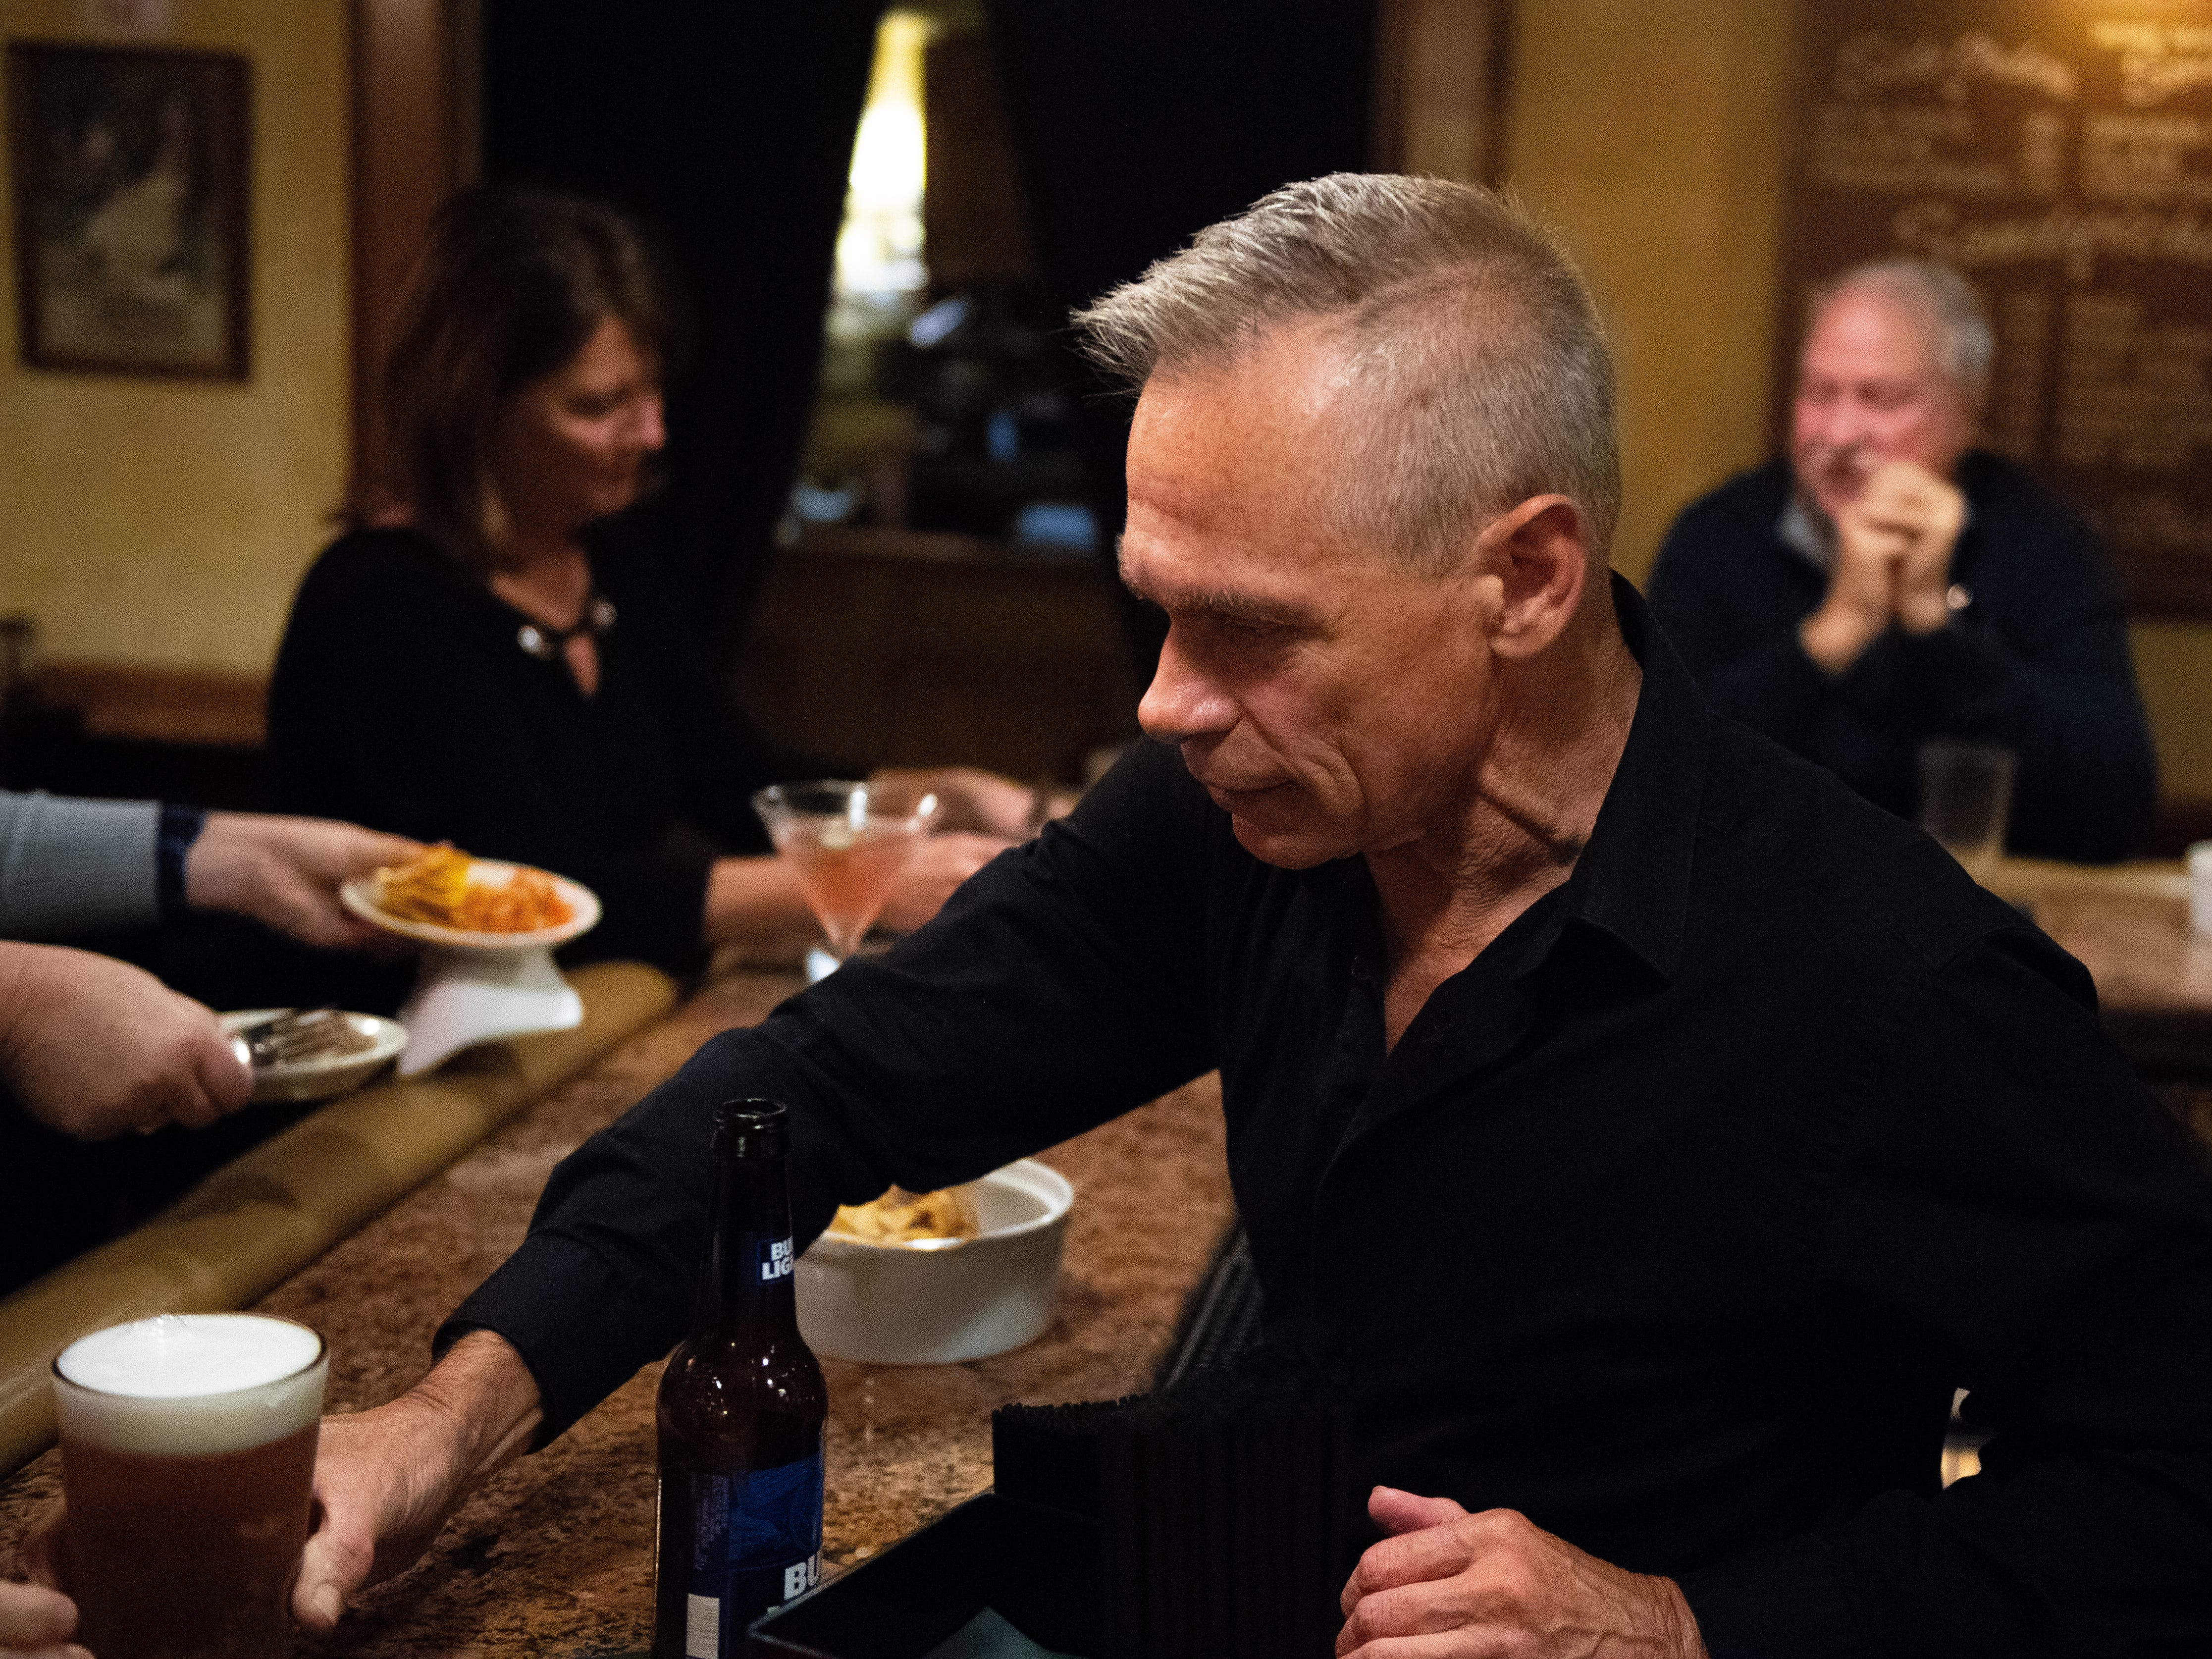 Michael Giuffrida completes the order during happy hour at Roosevelt Tavern, November 9, 2018.